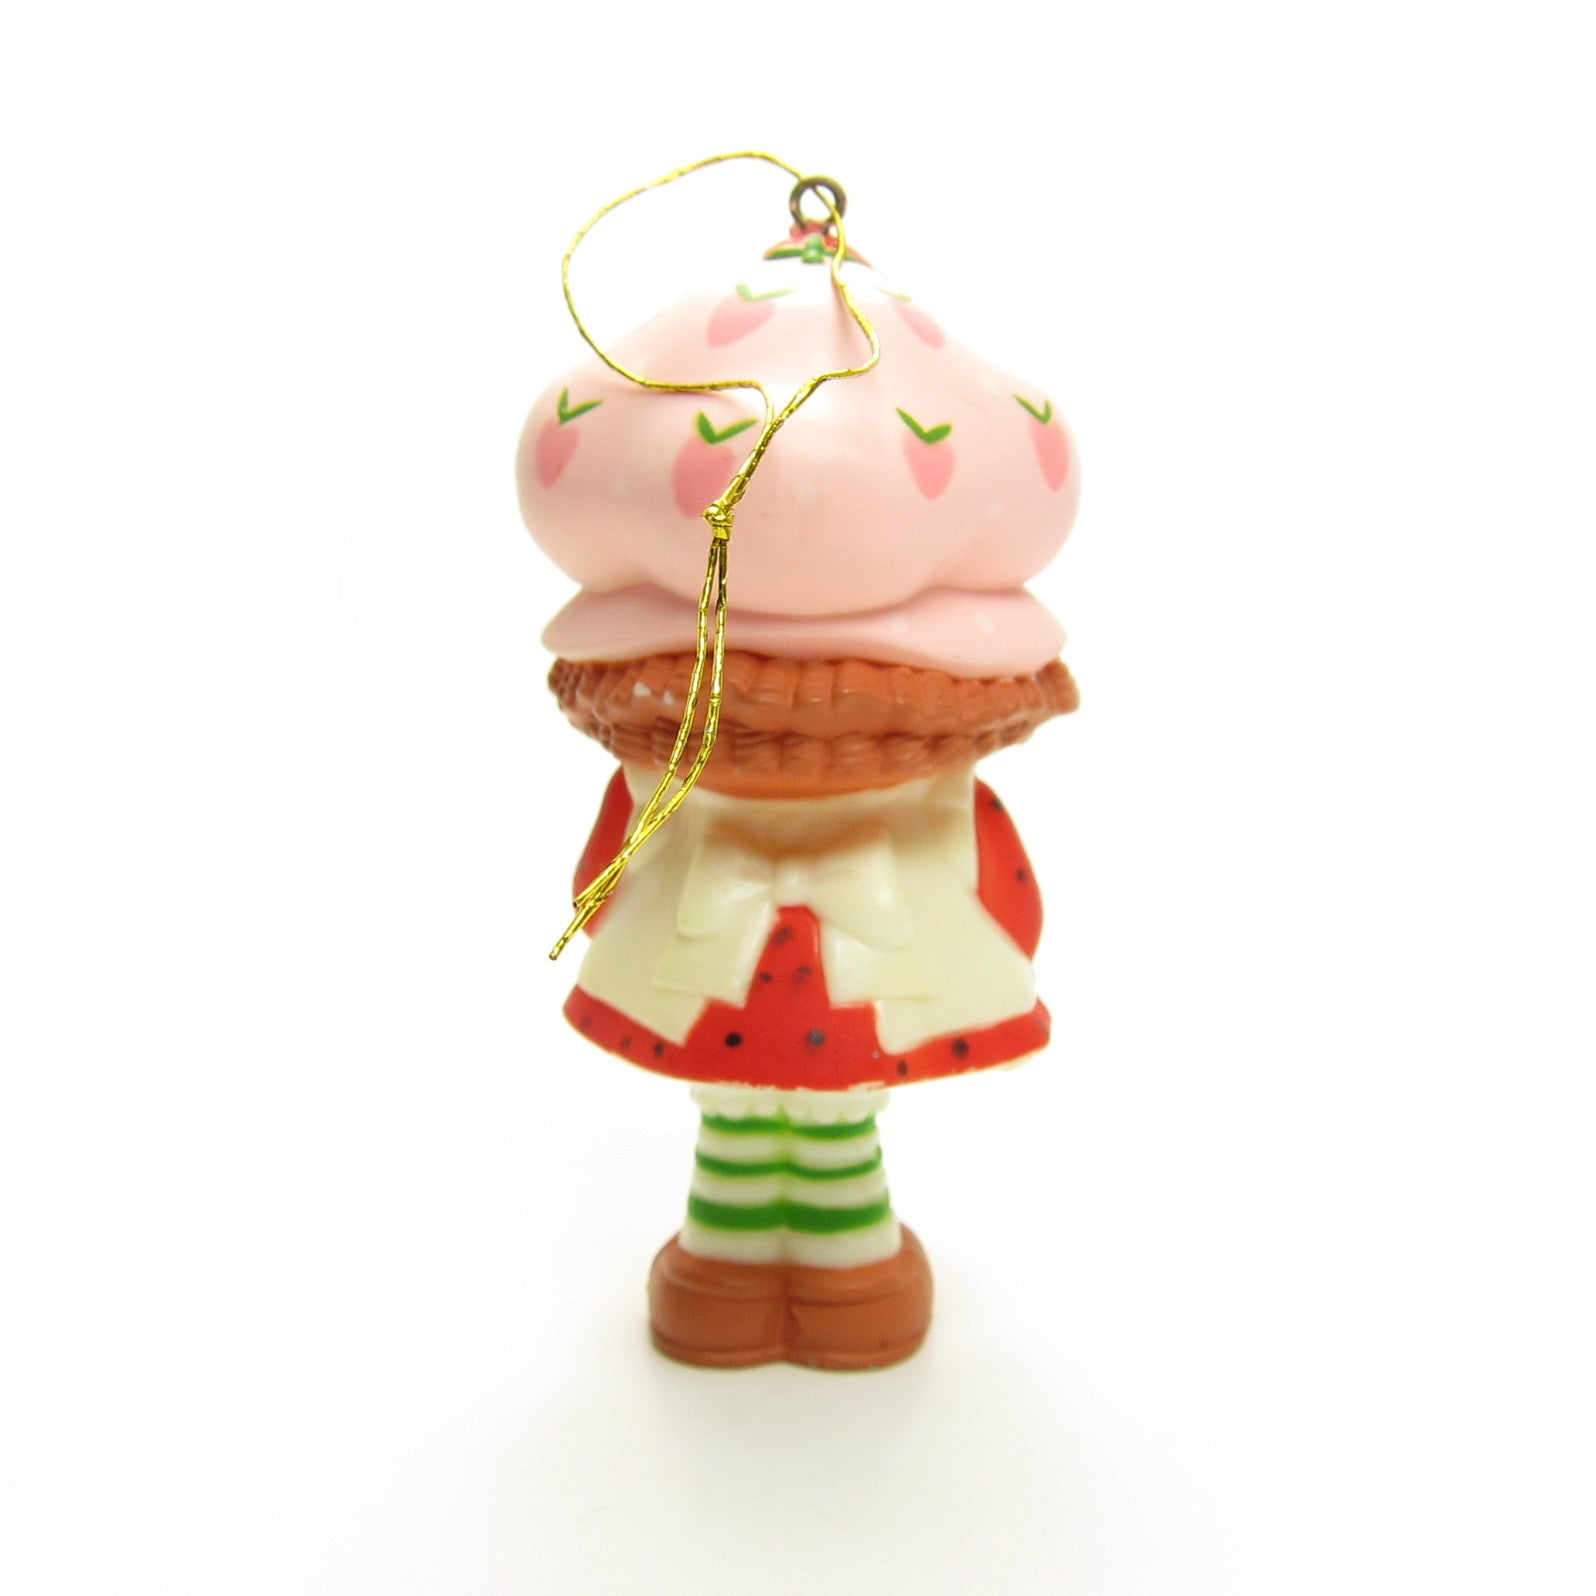 Strawberry christmas ornaments - Strawberry Shortcake Christmas Ornament With Present